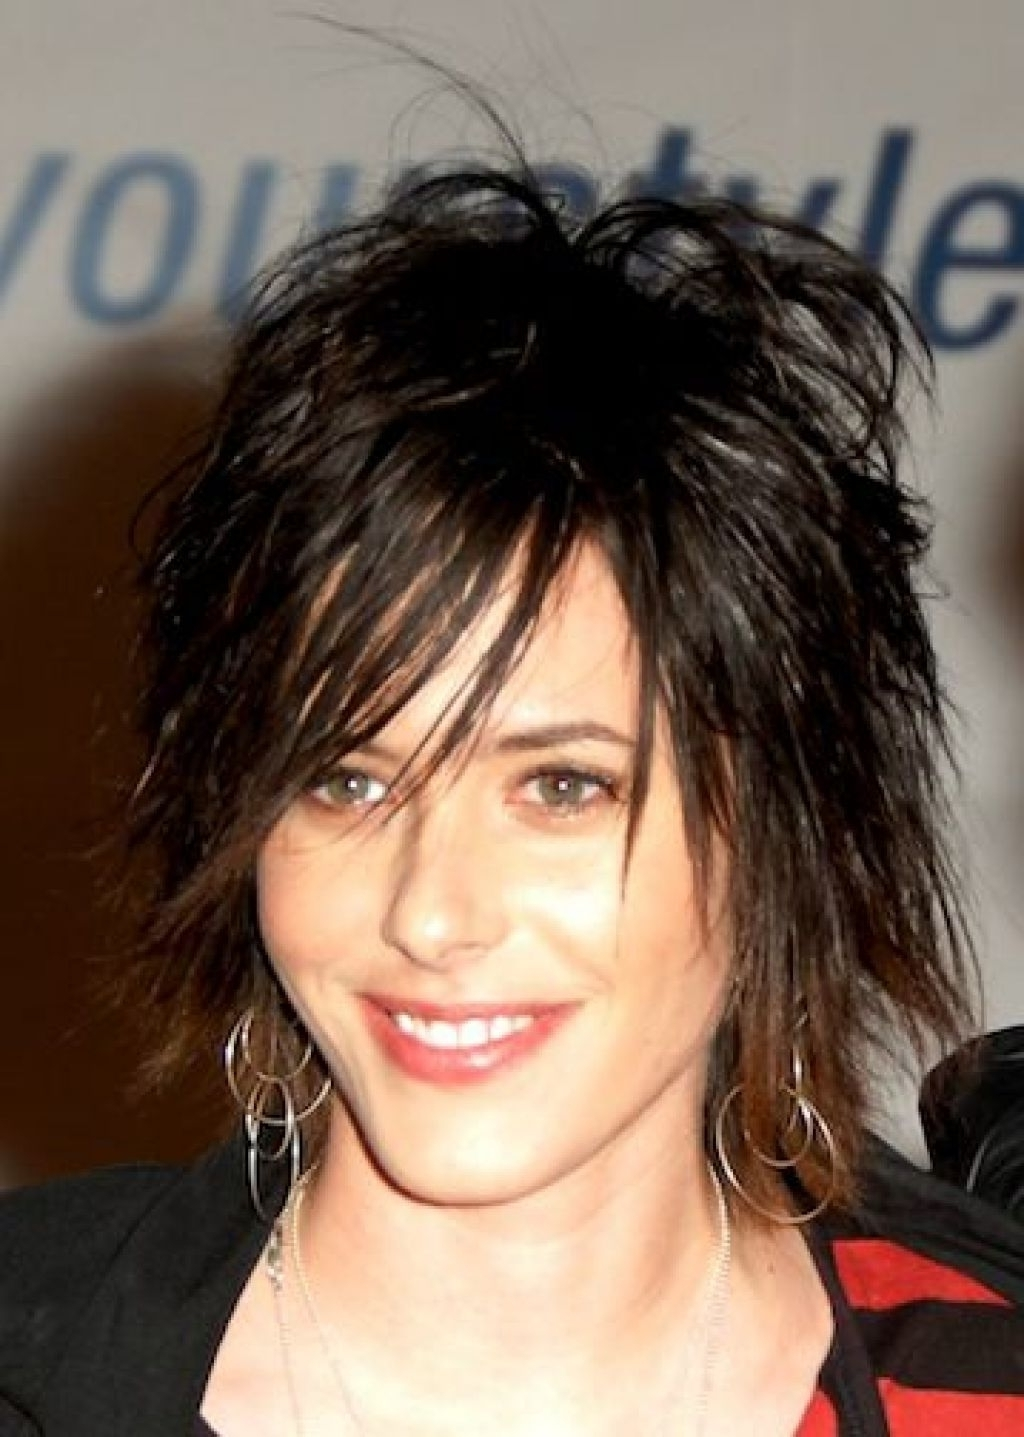 Best Medium Shaggy Haircuts Ideas On Pinterest Bob Shag For Easy Throughout Most Current Short Shaggy Choppy Hairstyles (View 2 of 15)